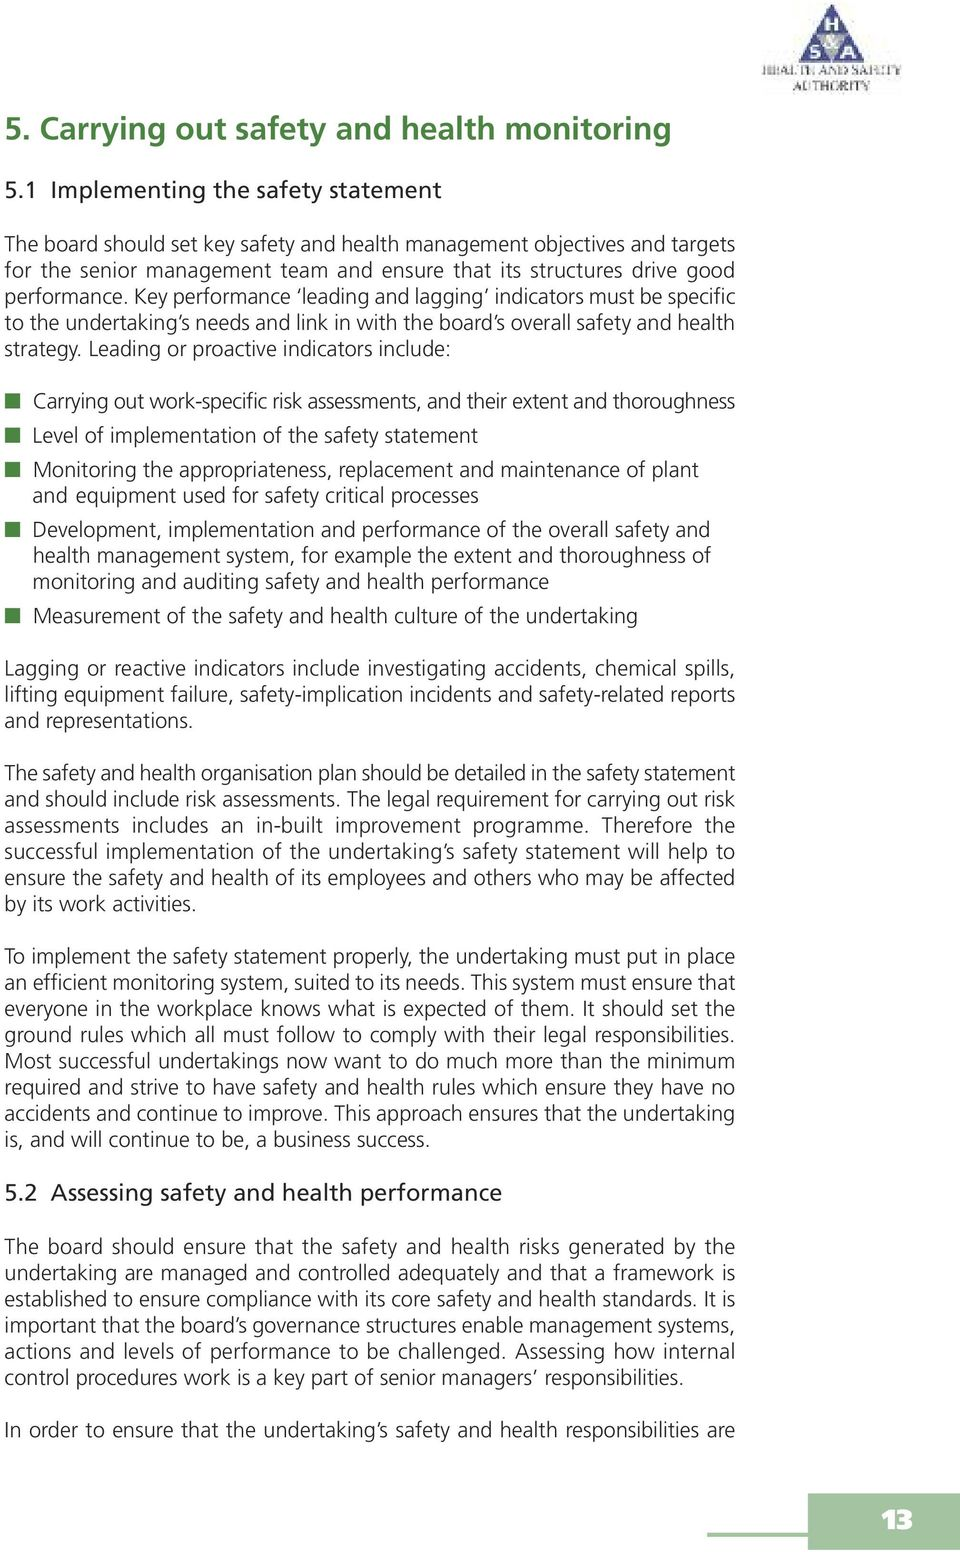 Key performance leading and lagging indicators must be specific to the undertaking s needs and link in with the board s overall safety and health strategy.